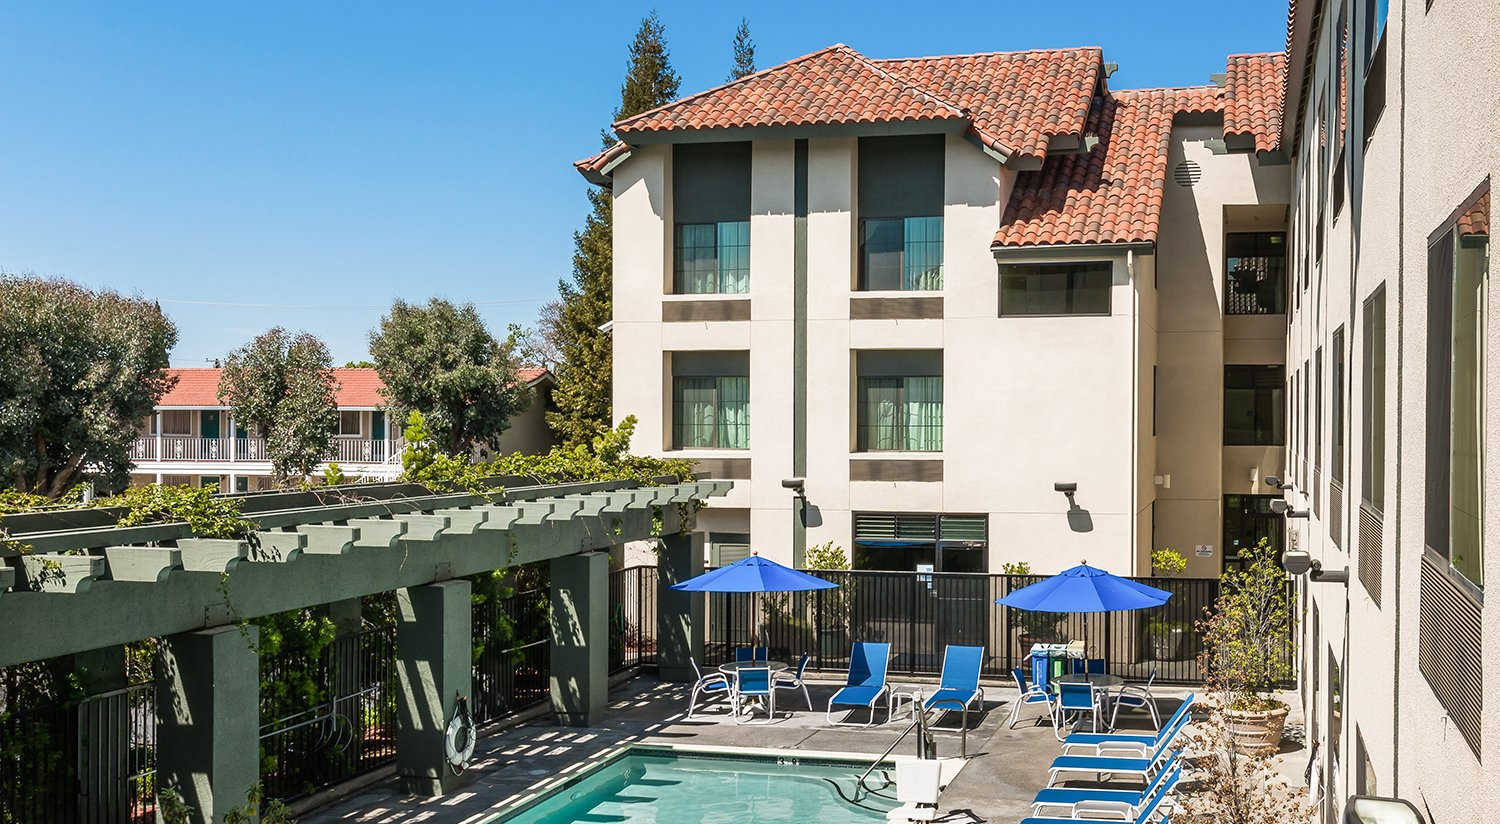 ENJOY OUR WORLD CLASS AMENITIES, INCLUDING A FITNESS ROOM AND HEATED POOL